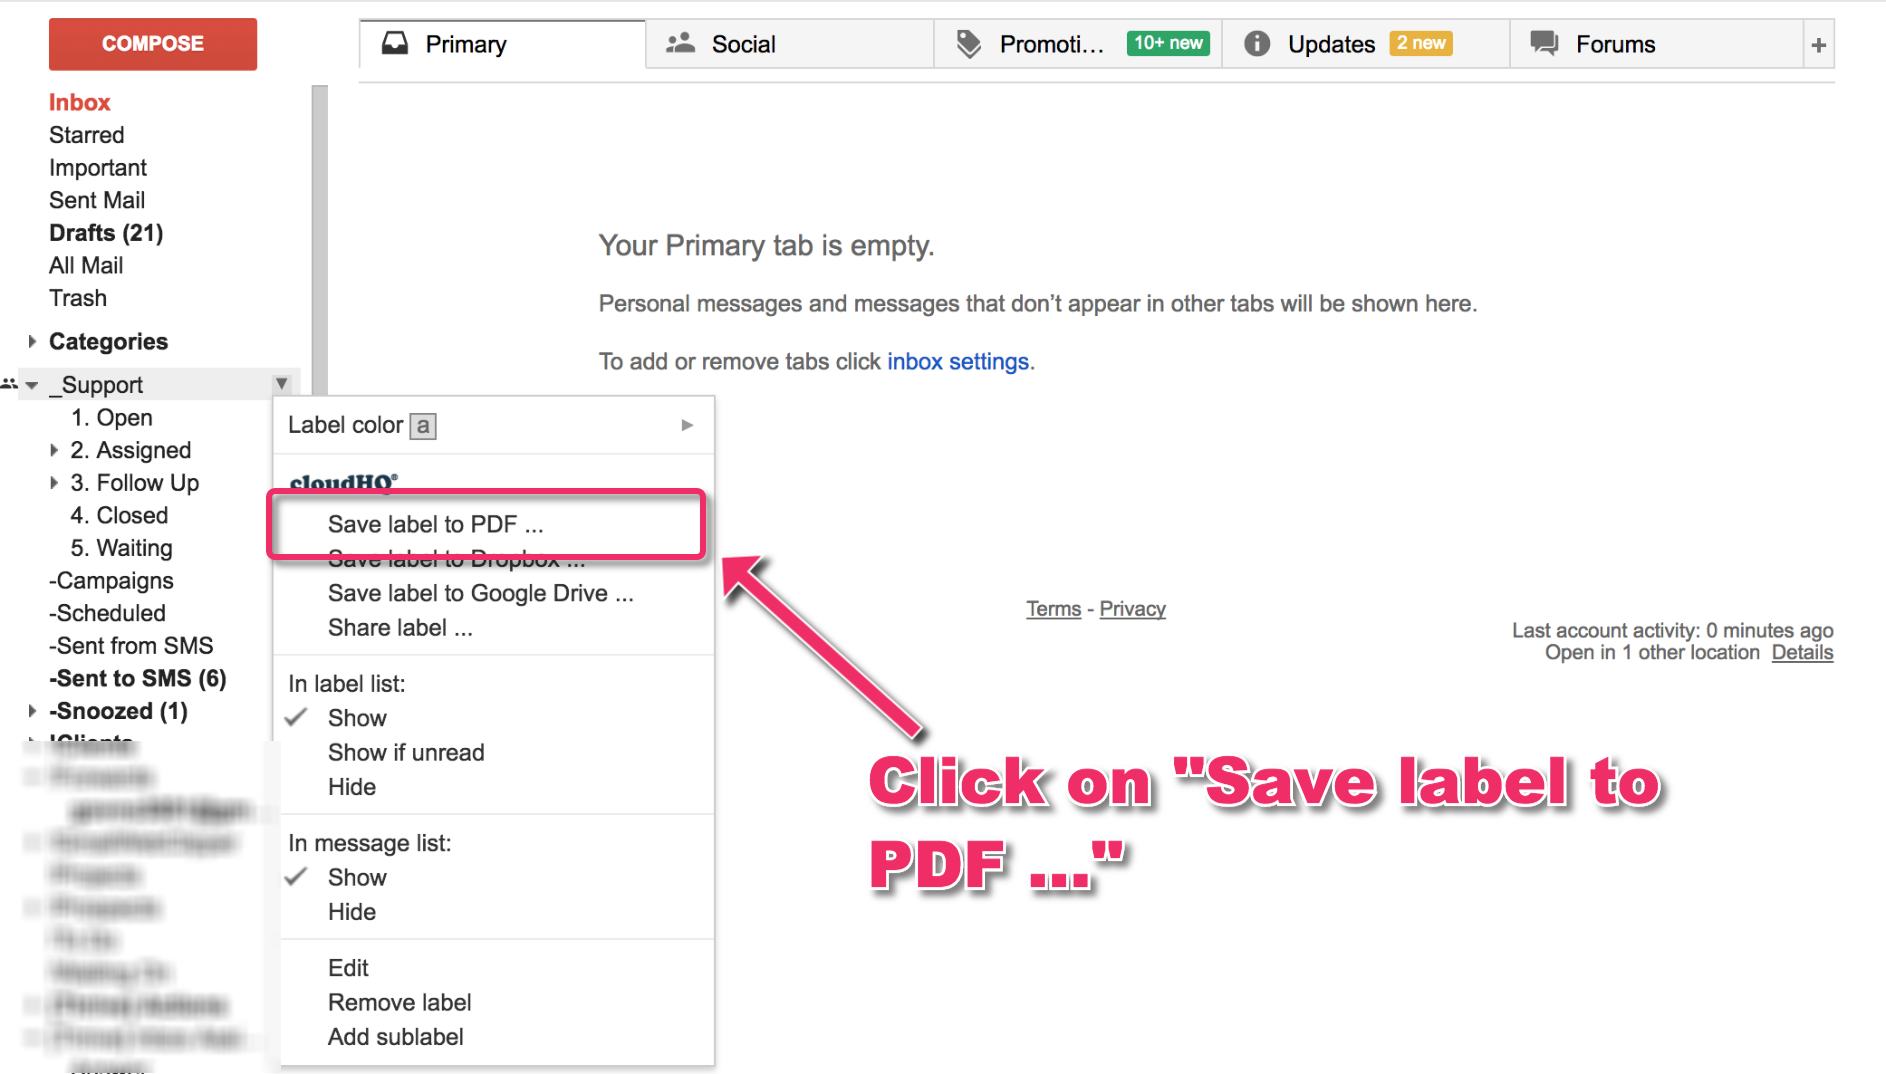 How to save to PDF all emails in a label and sublabel